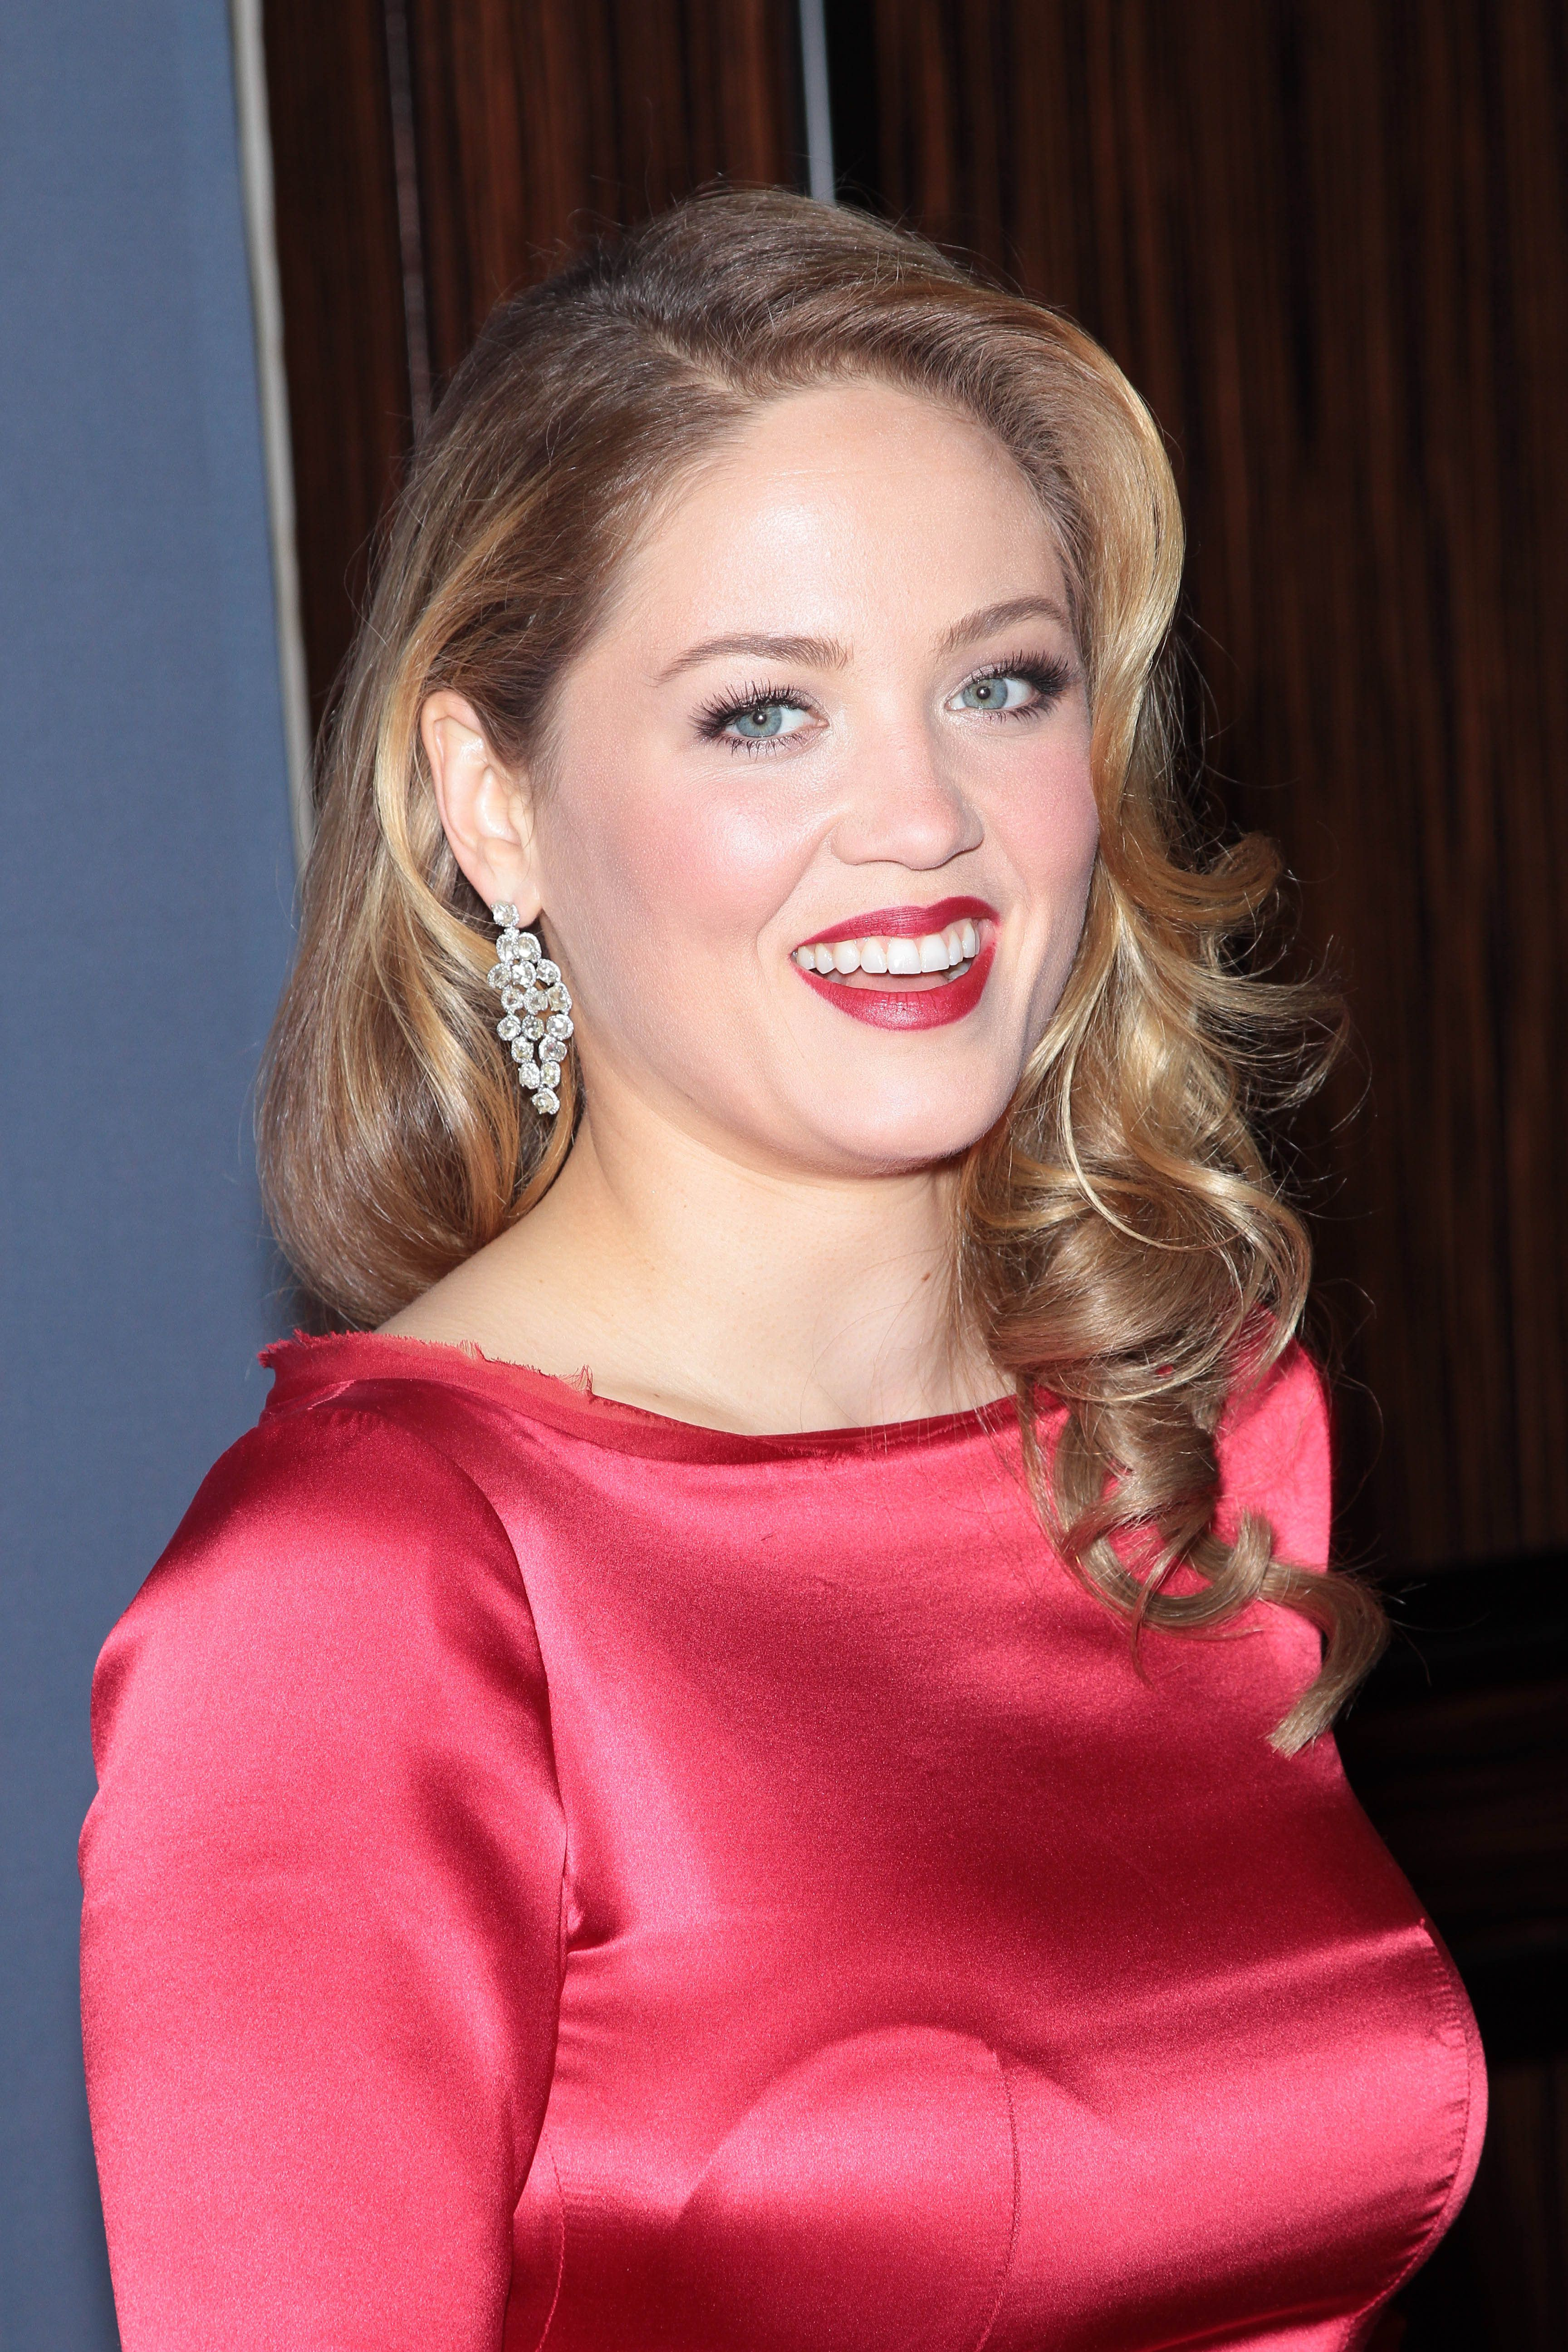 Celebrity Erika Christensen naked (57 foto and video), Ass, Paparazzi, Boobs, braless 2006